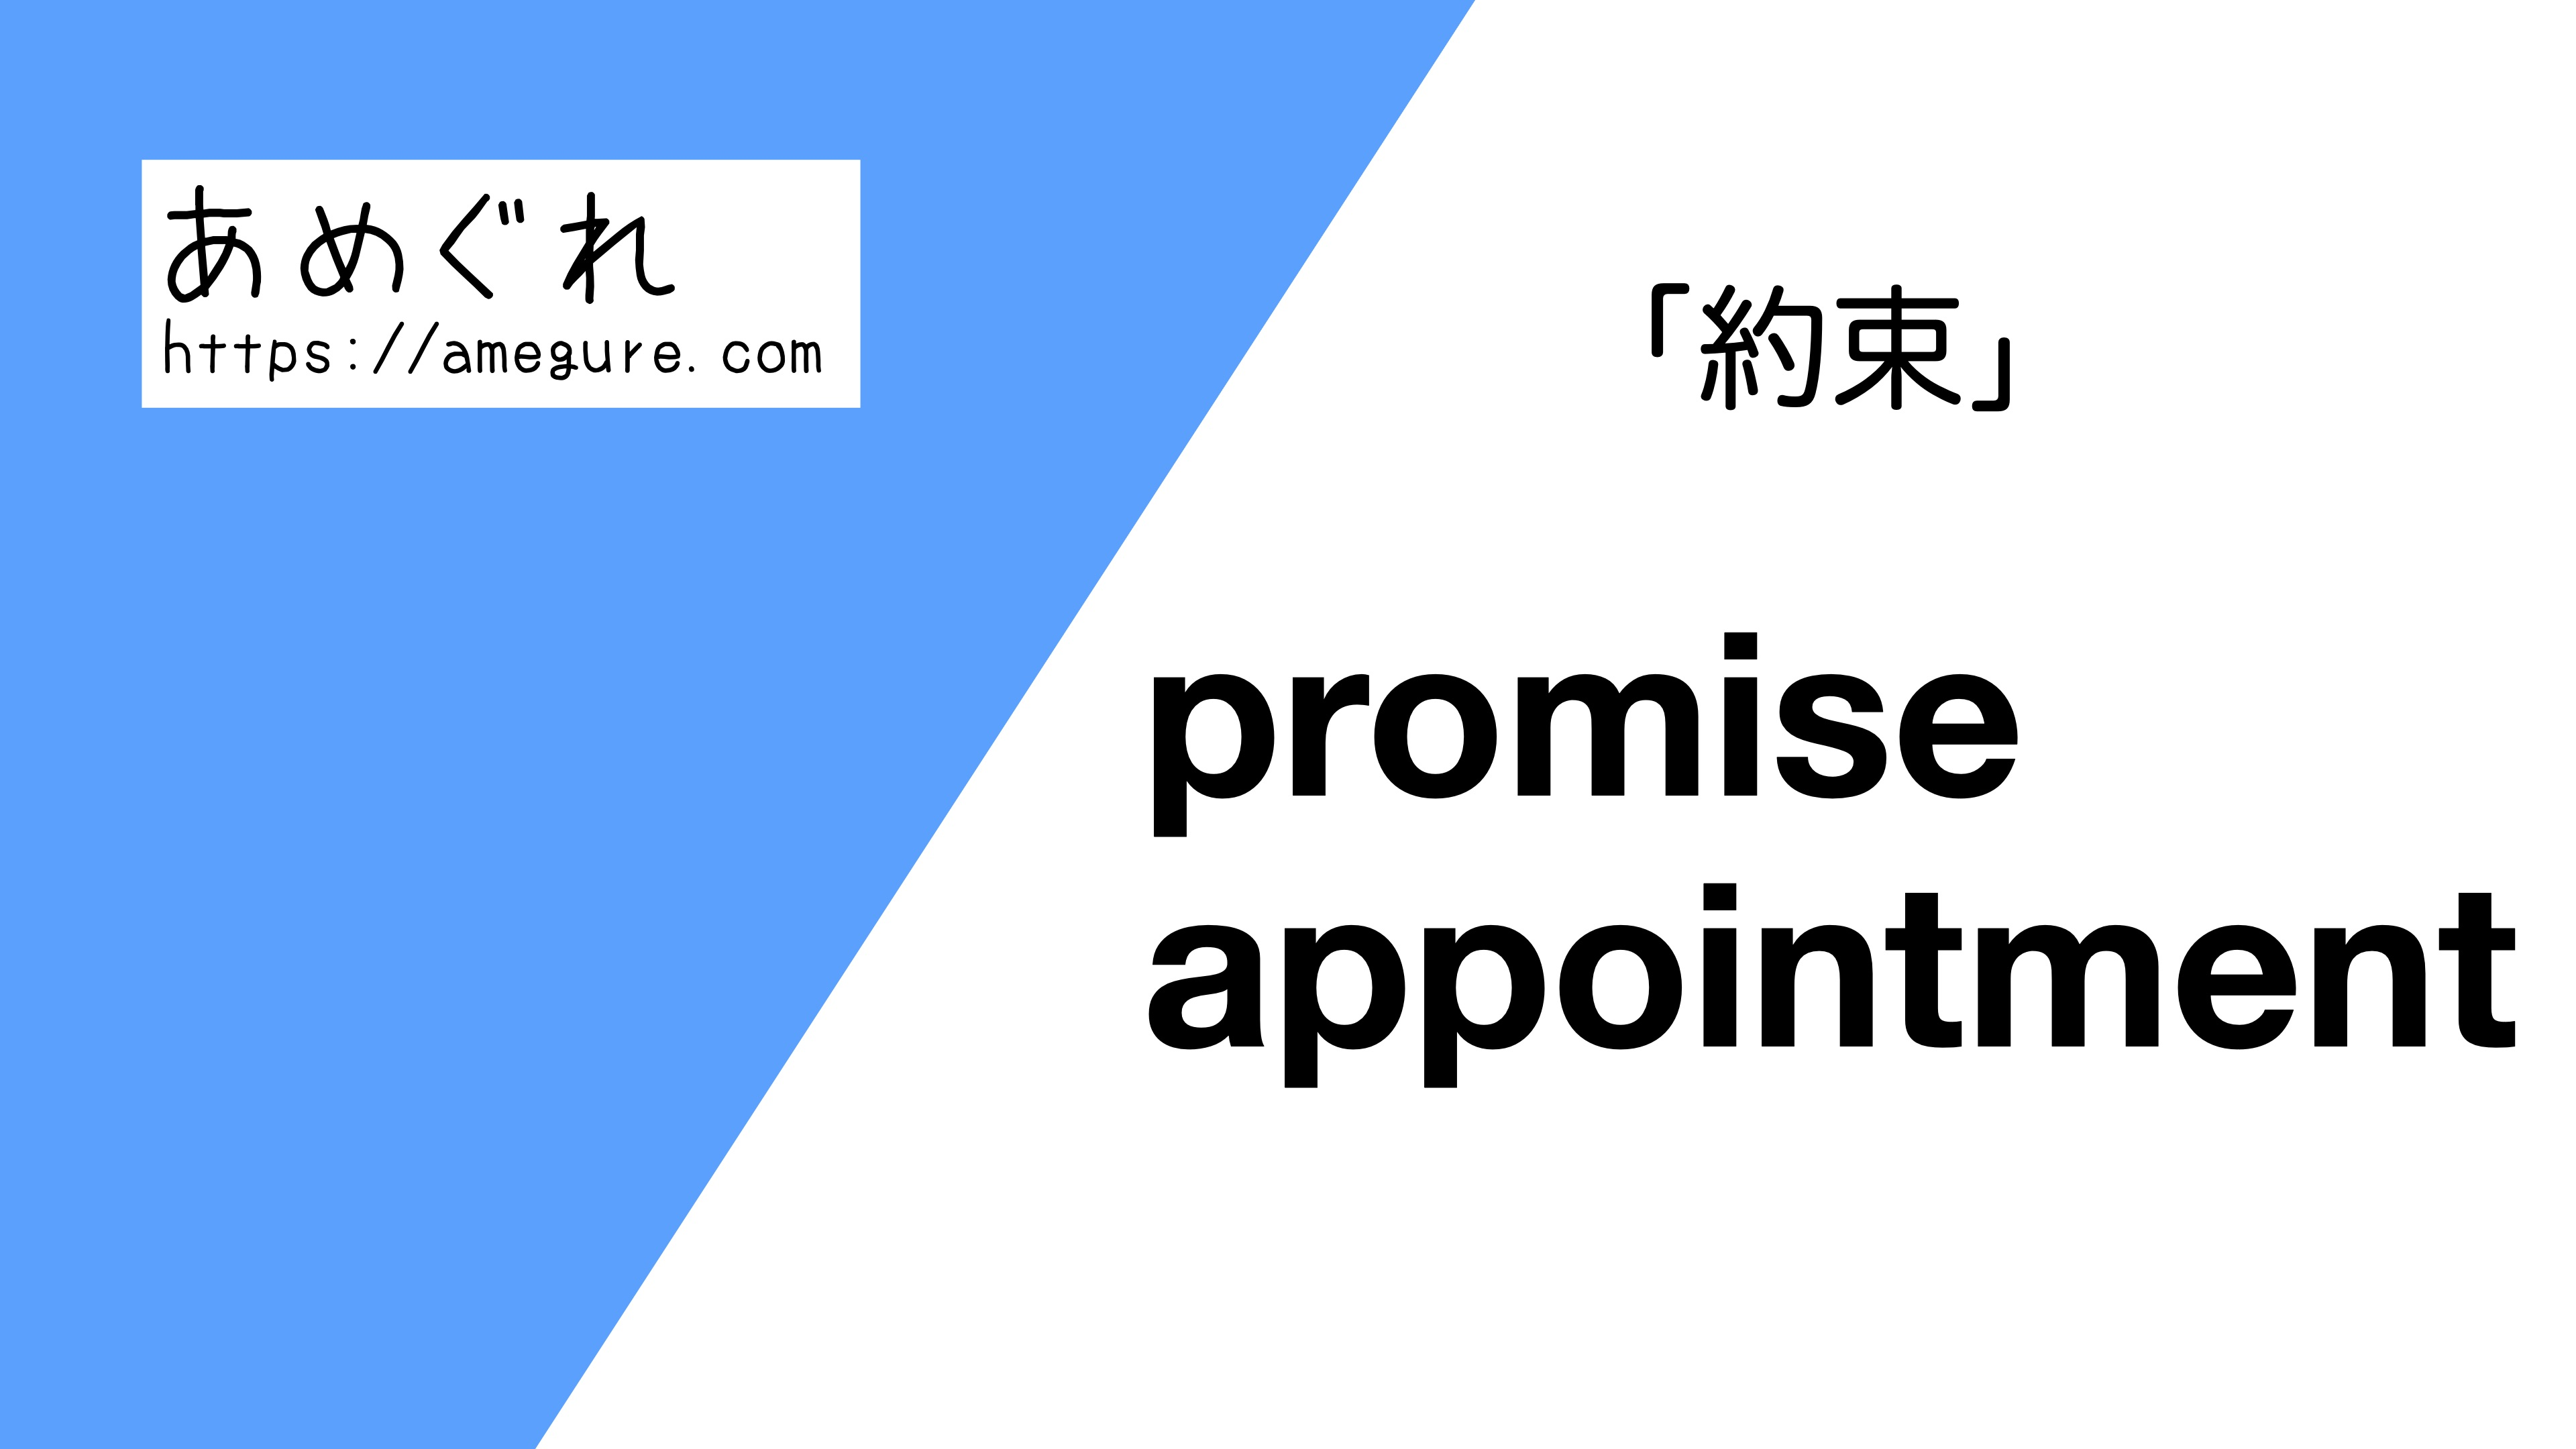 promise-appointment違い